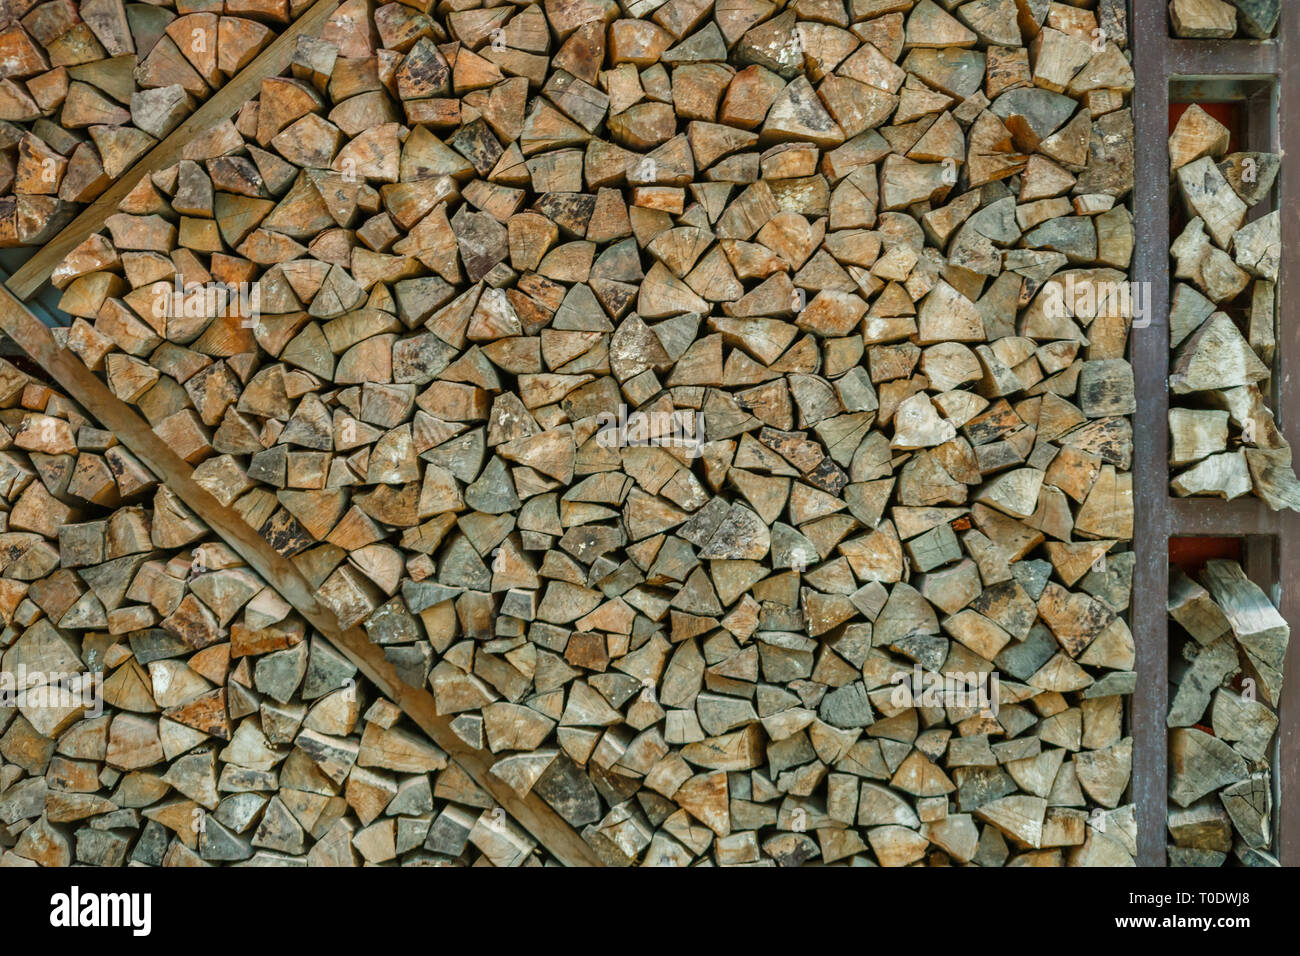 Picture of wall from sawn timber logs - Stock Image